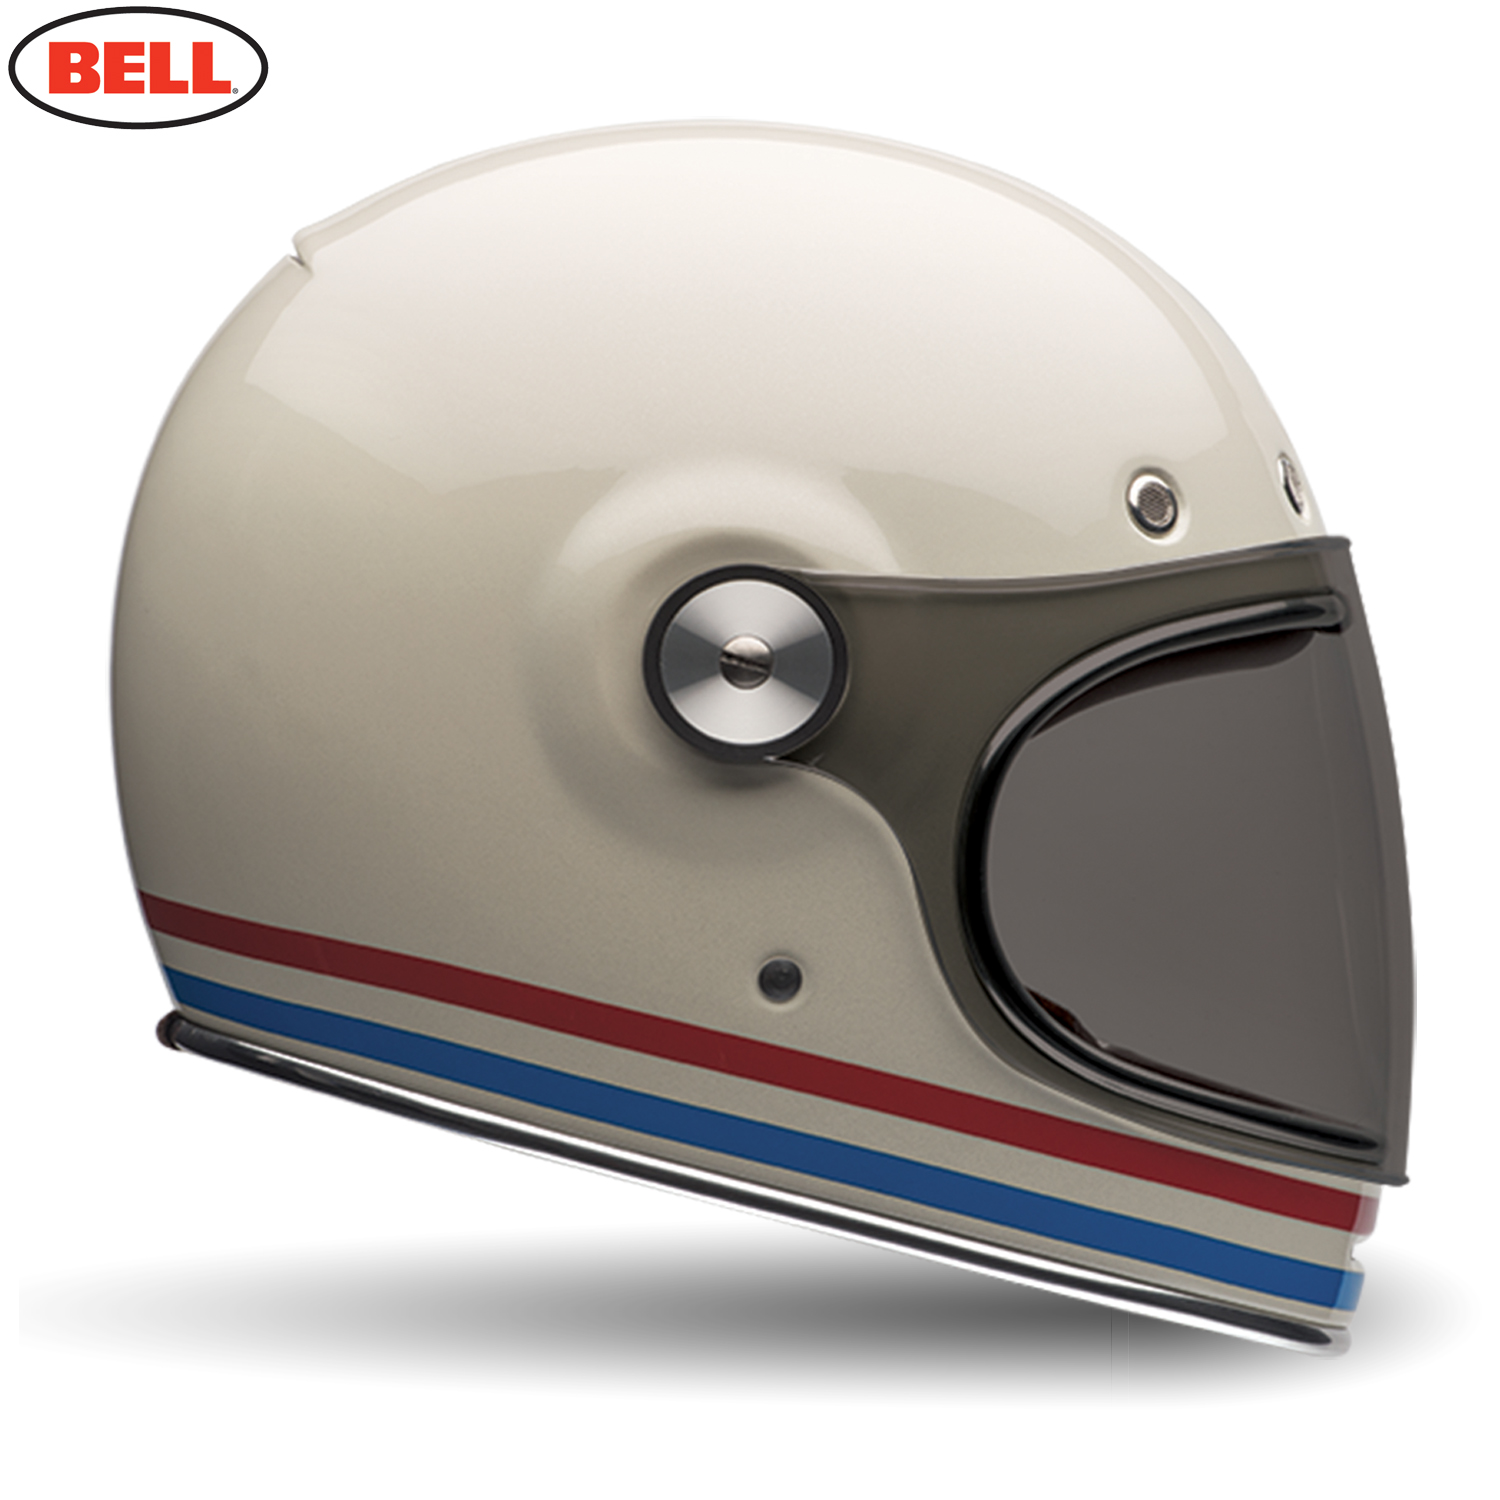 Bullitt Stripes Vintage White